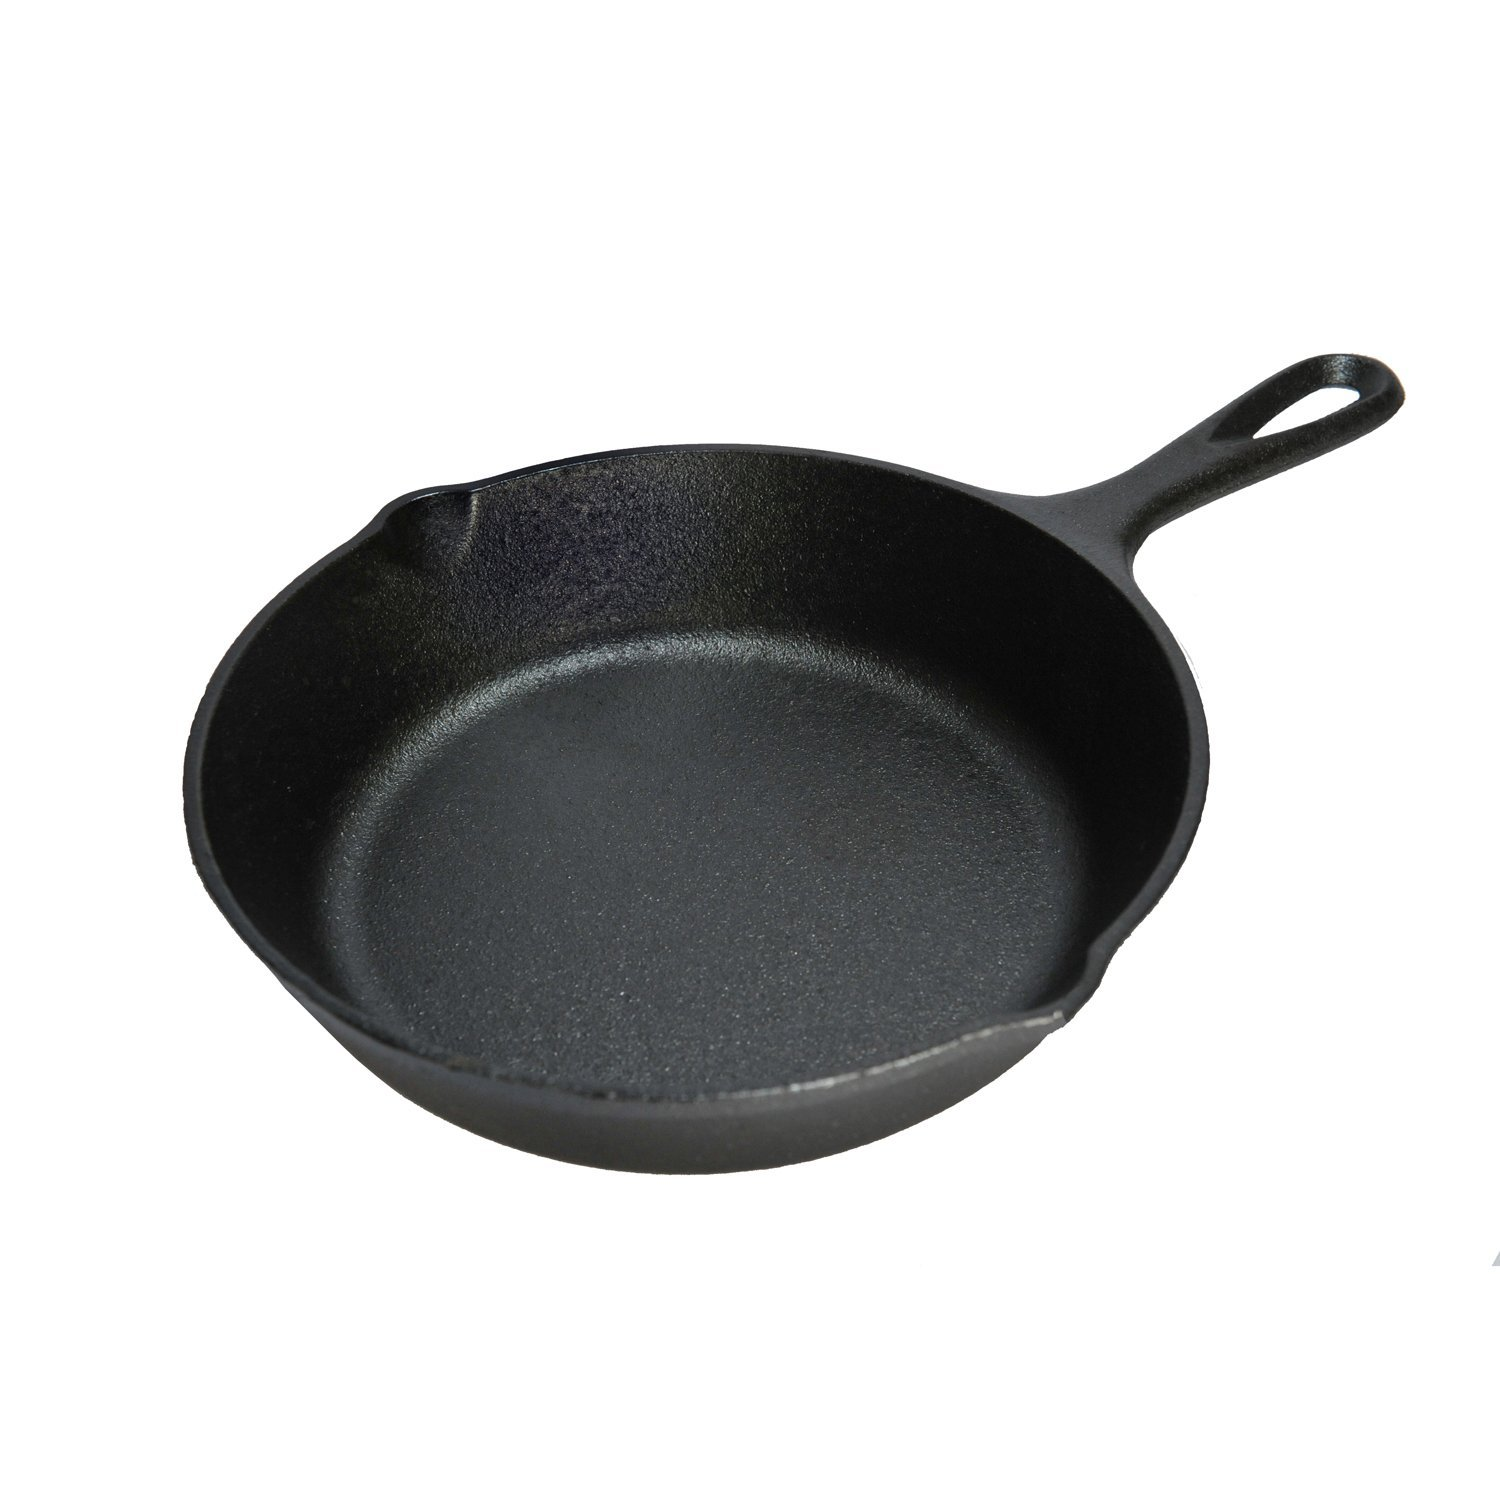 Pre-Seasoned Cast-Iron Skillet 8-inch